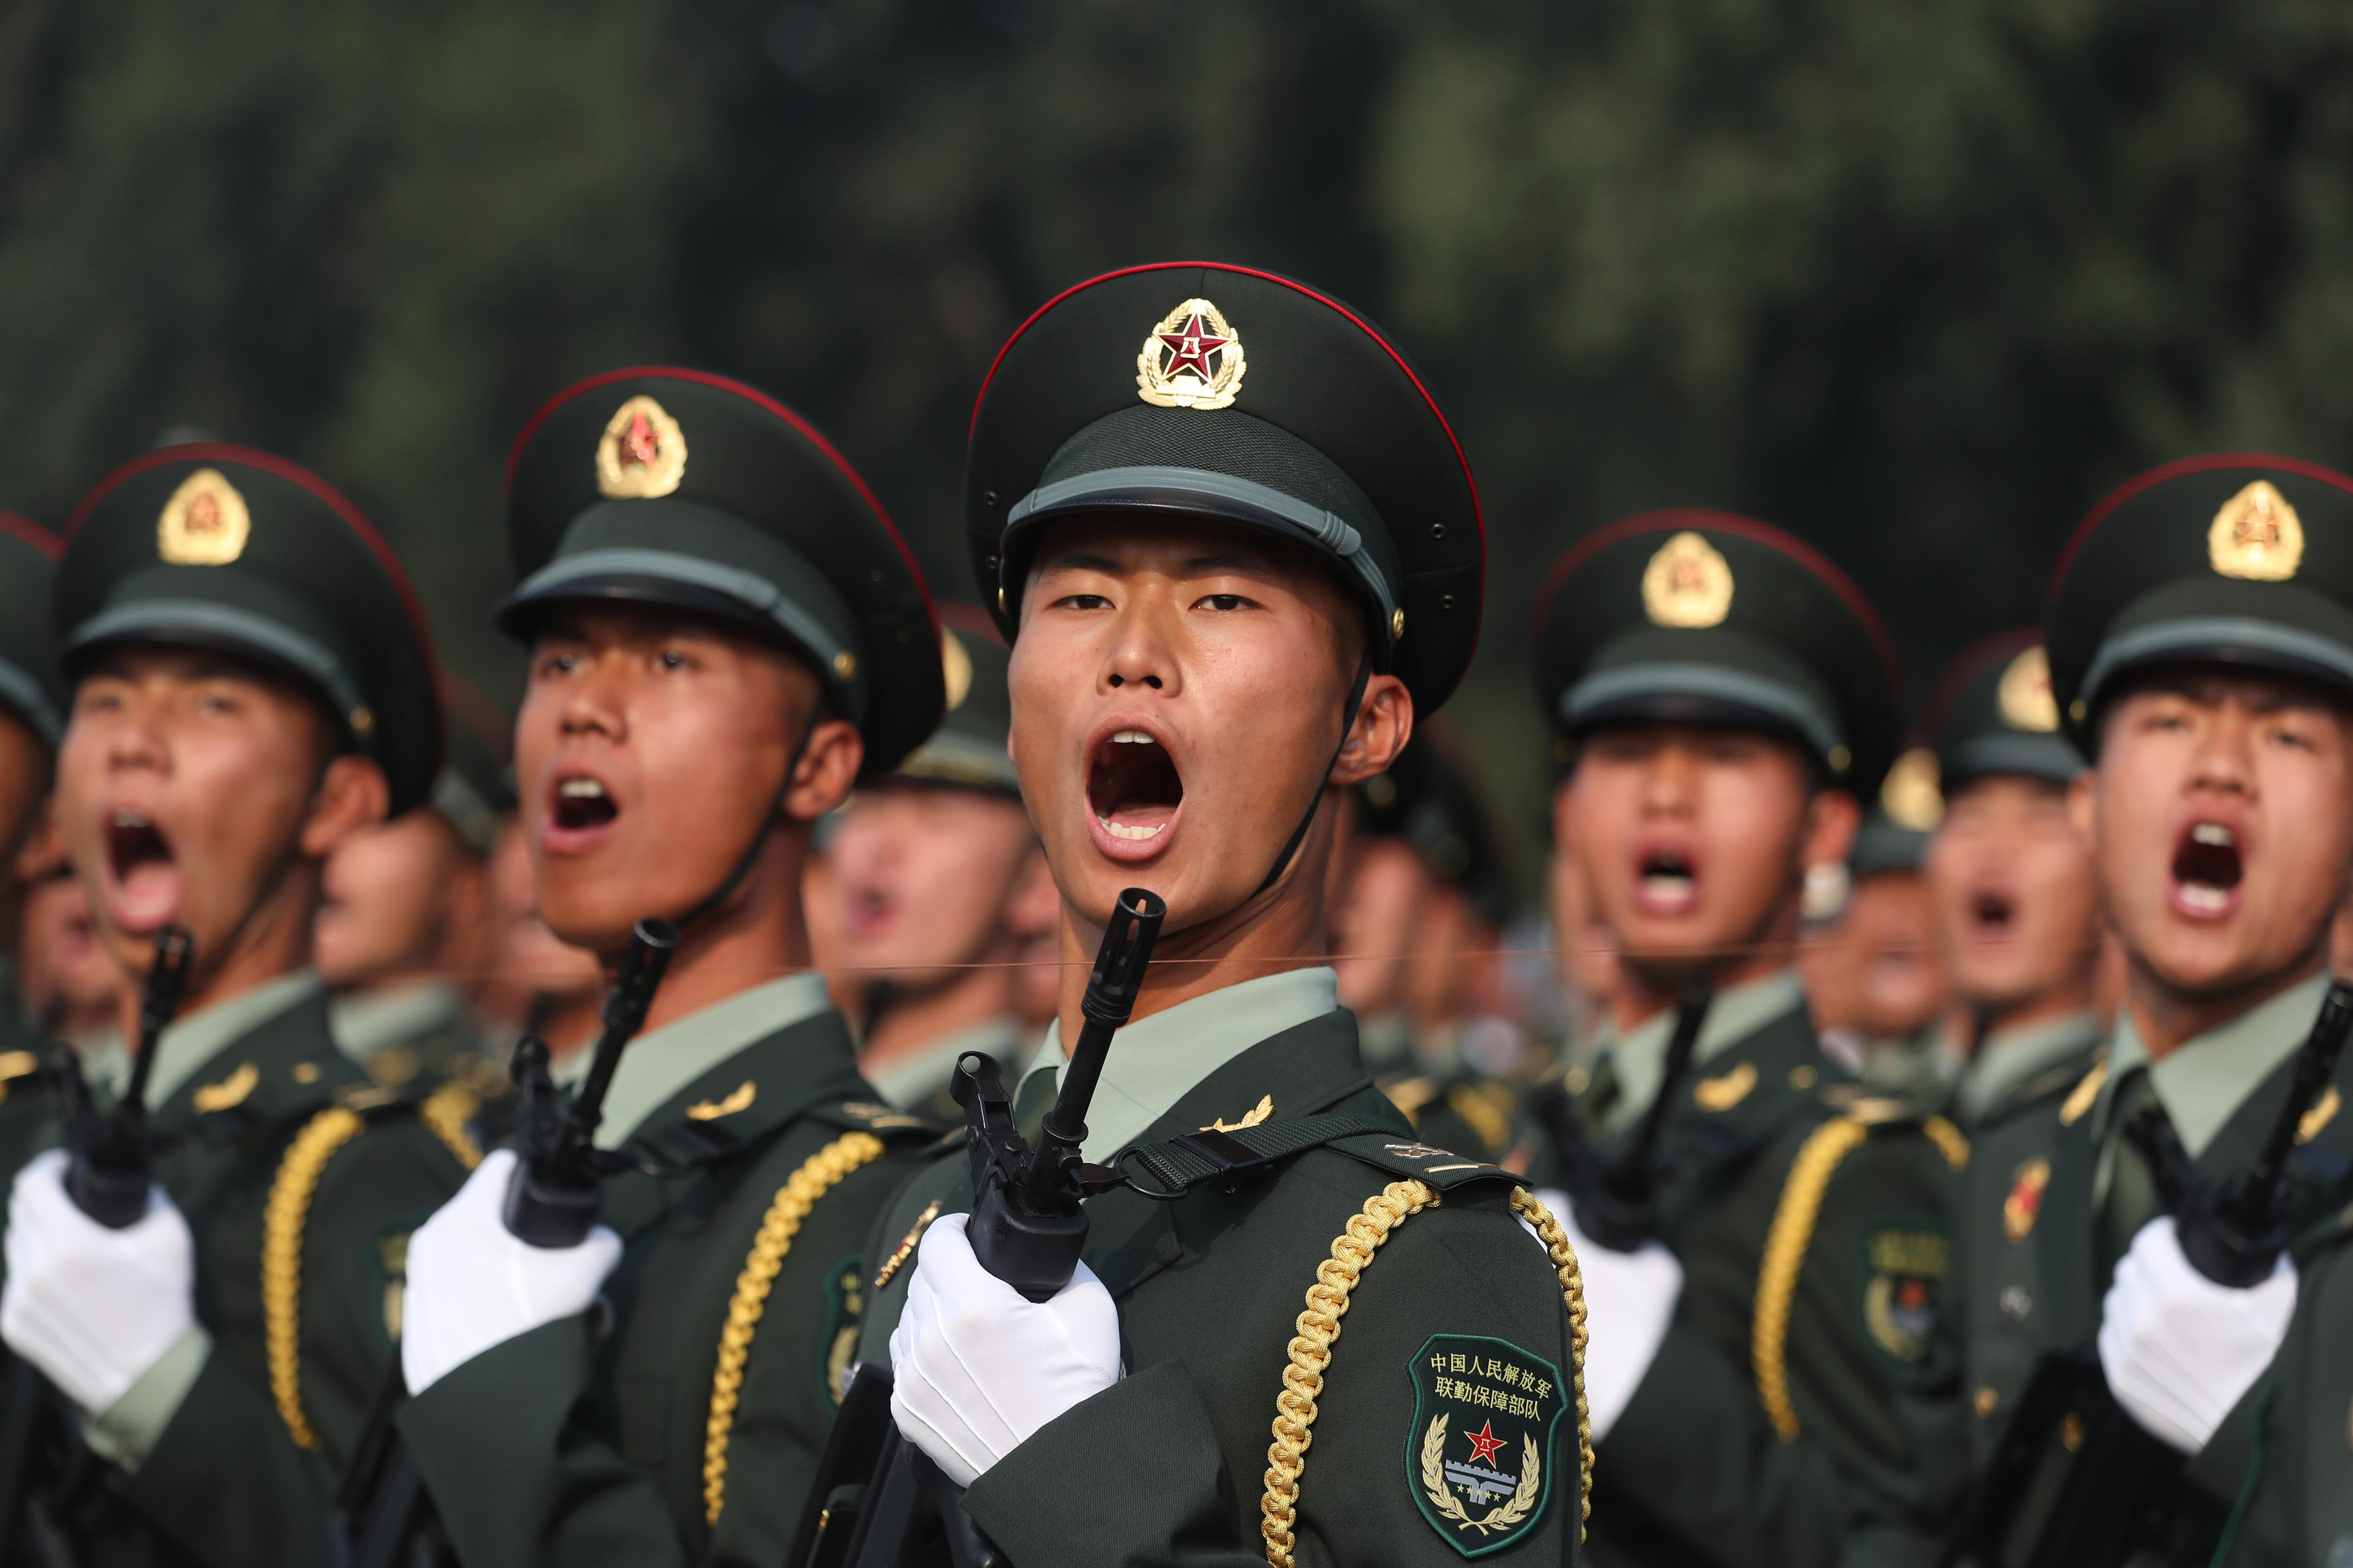 China's military might has now become a top issue for NATO